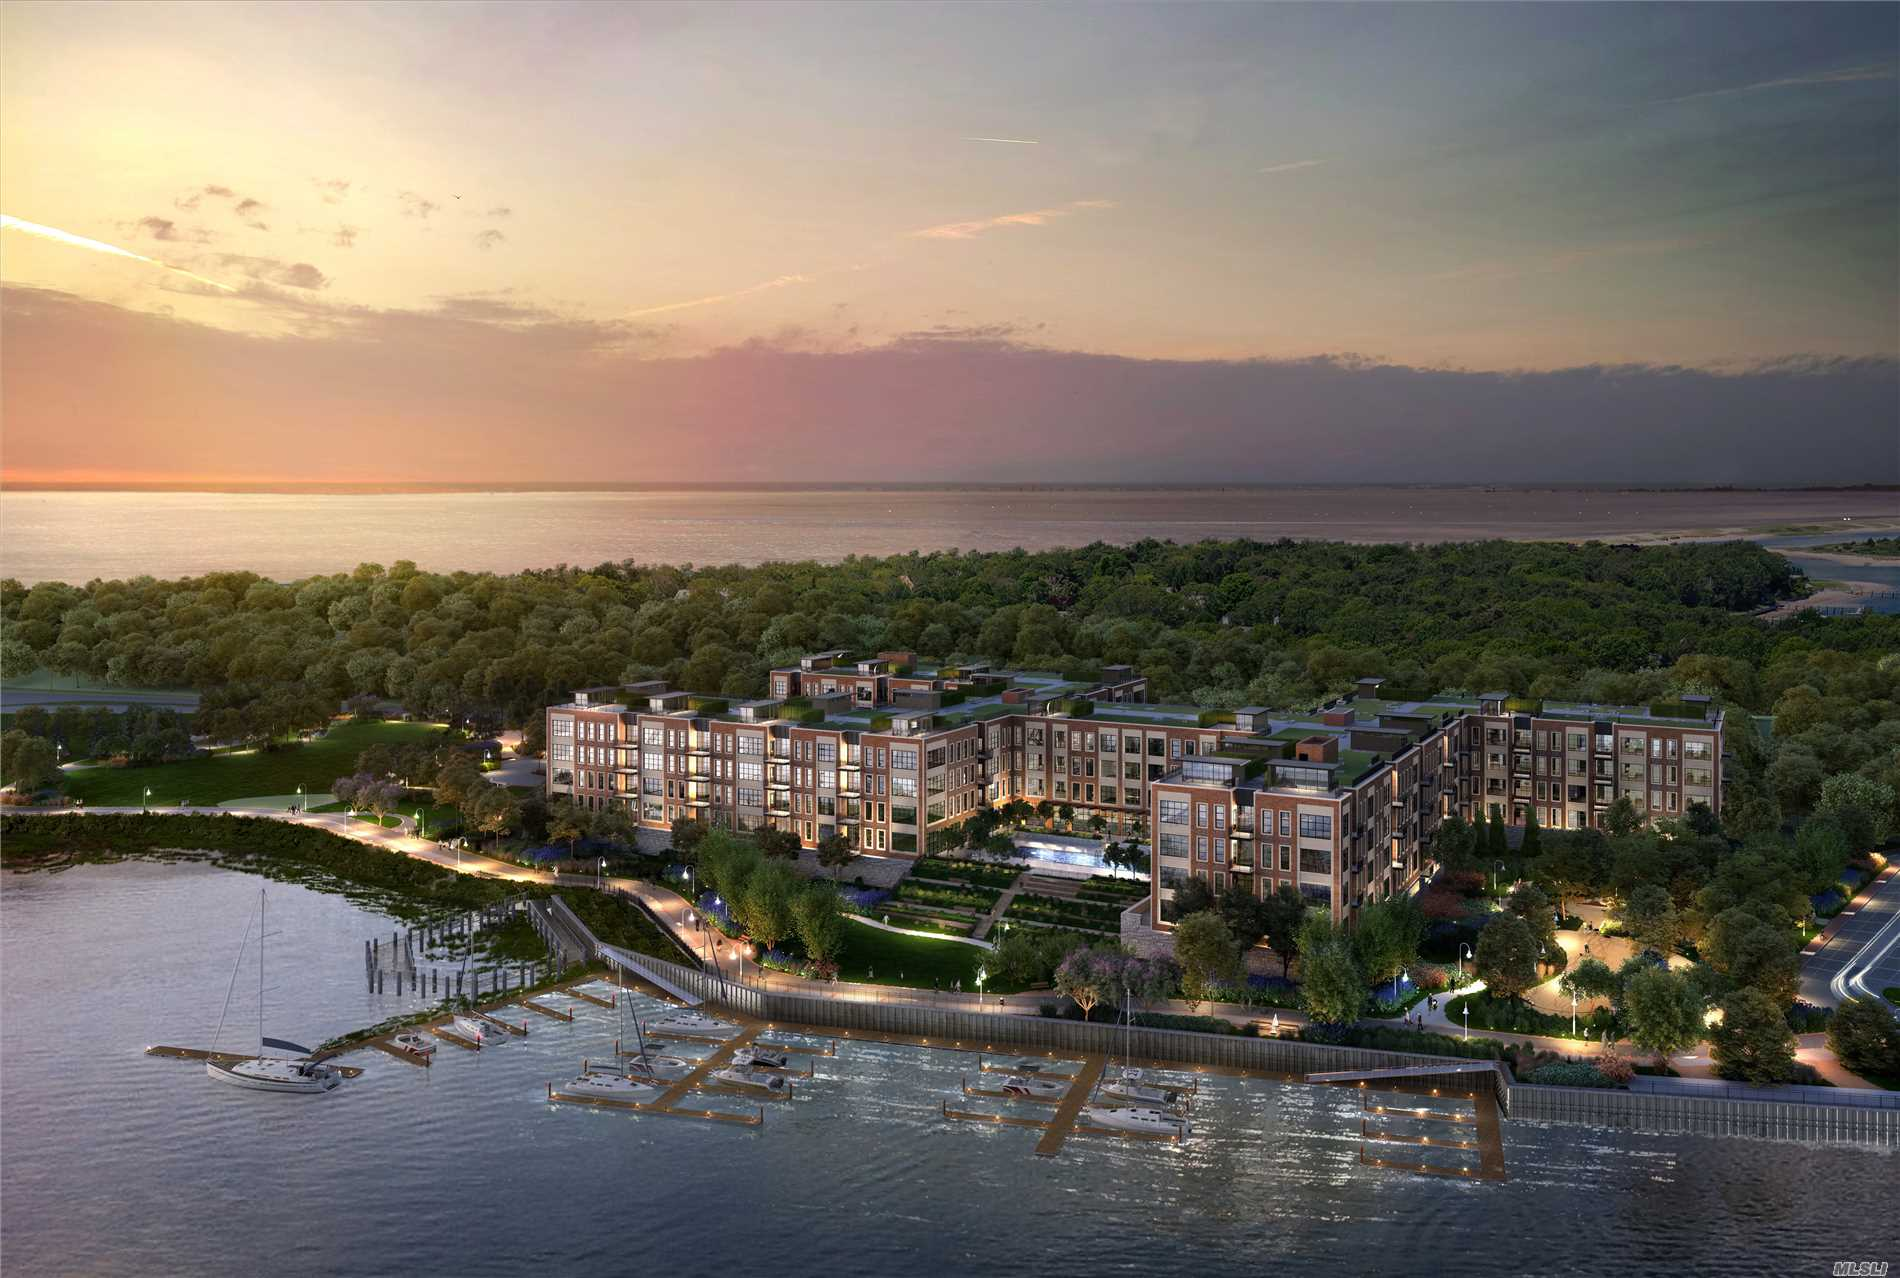 Property for sale at 100 Garvies Point Road # 1345, Glen Cove NY 11542, Glen Cove,  New York 11542